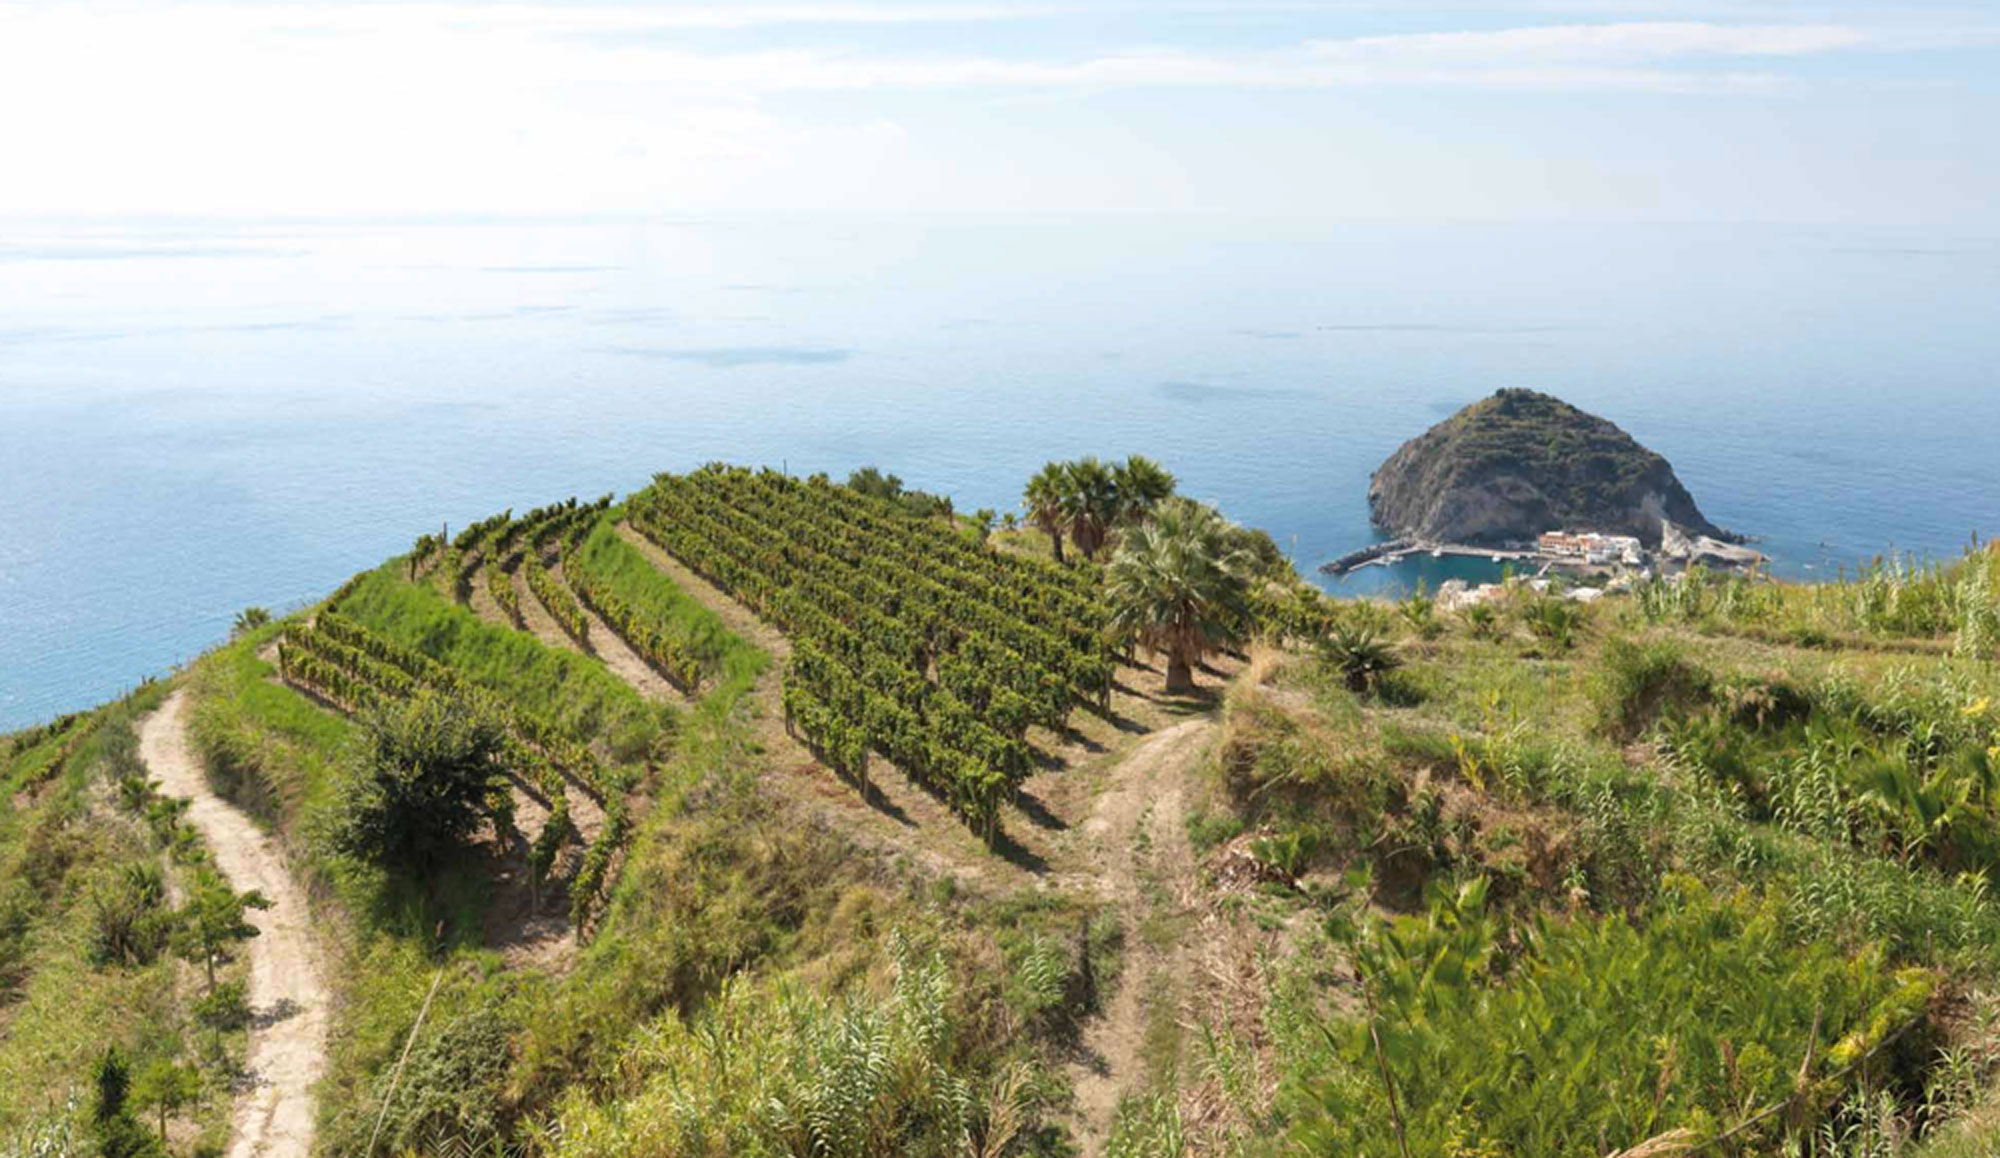 Visit to a Vineyard - Tour of the Vineyard and Wine Cellar, Wine Tasting with Anitpasto, Bruschetta or Similar Appetizer, Winery Museum visit.Additional options include: stay the day at the vineyard and paint, do yoga or meditate.